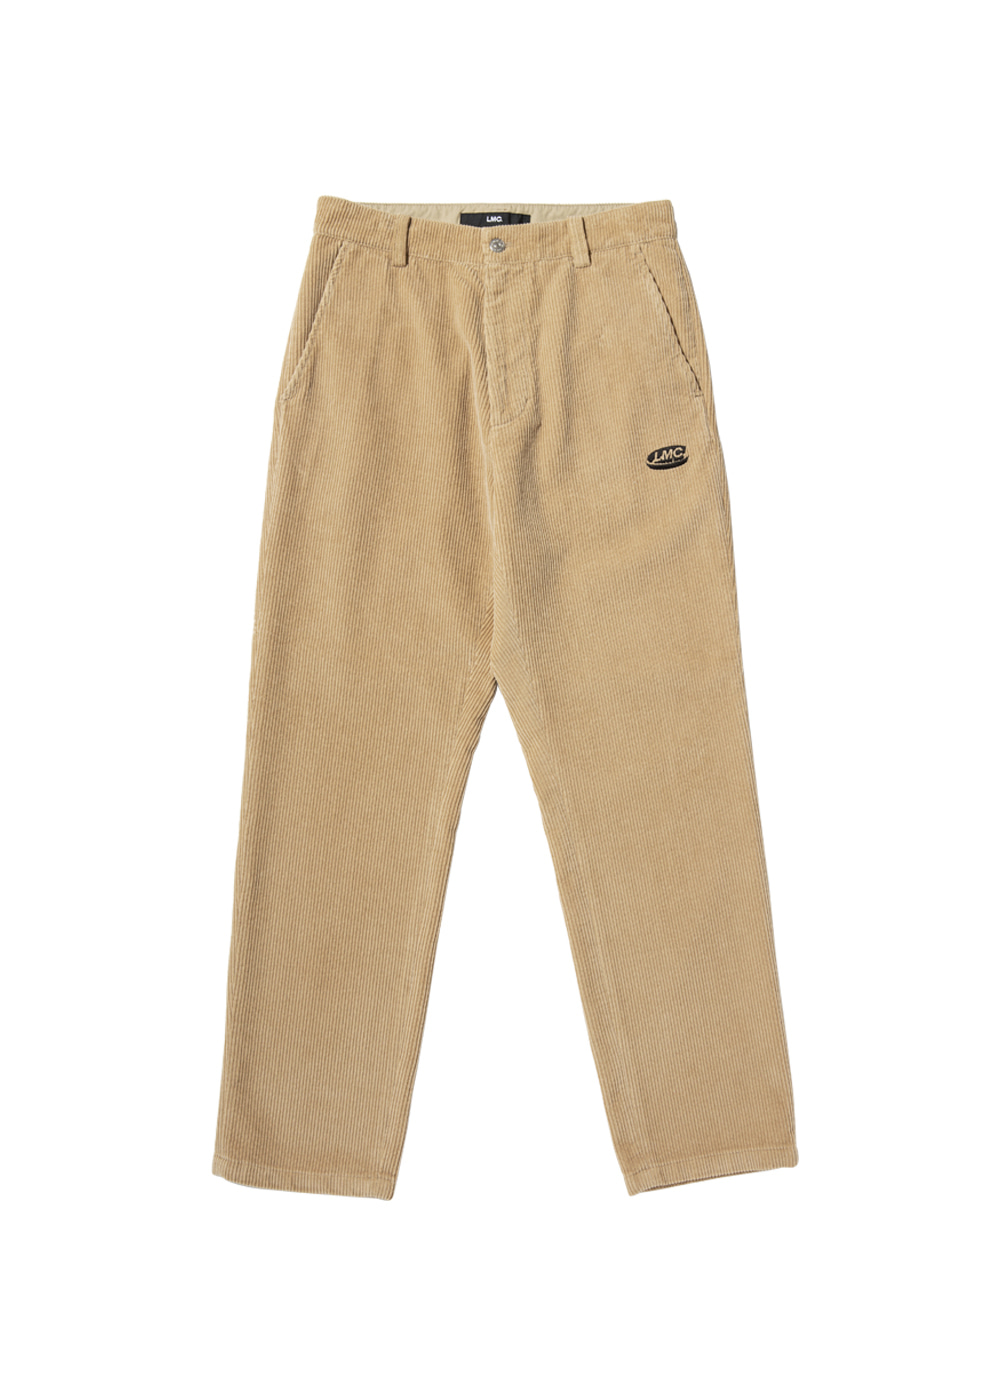 LMC CORDUROY PANTS yellow brown